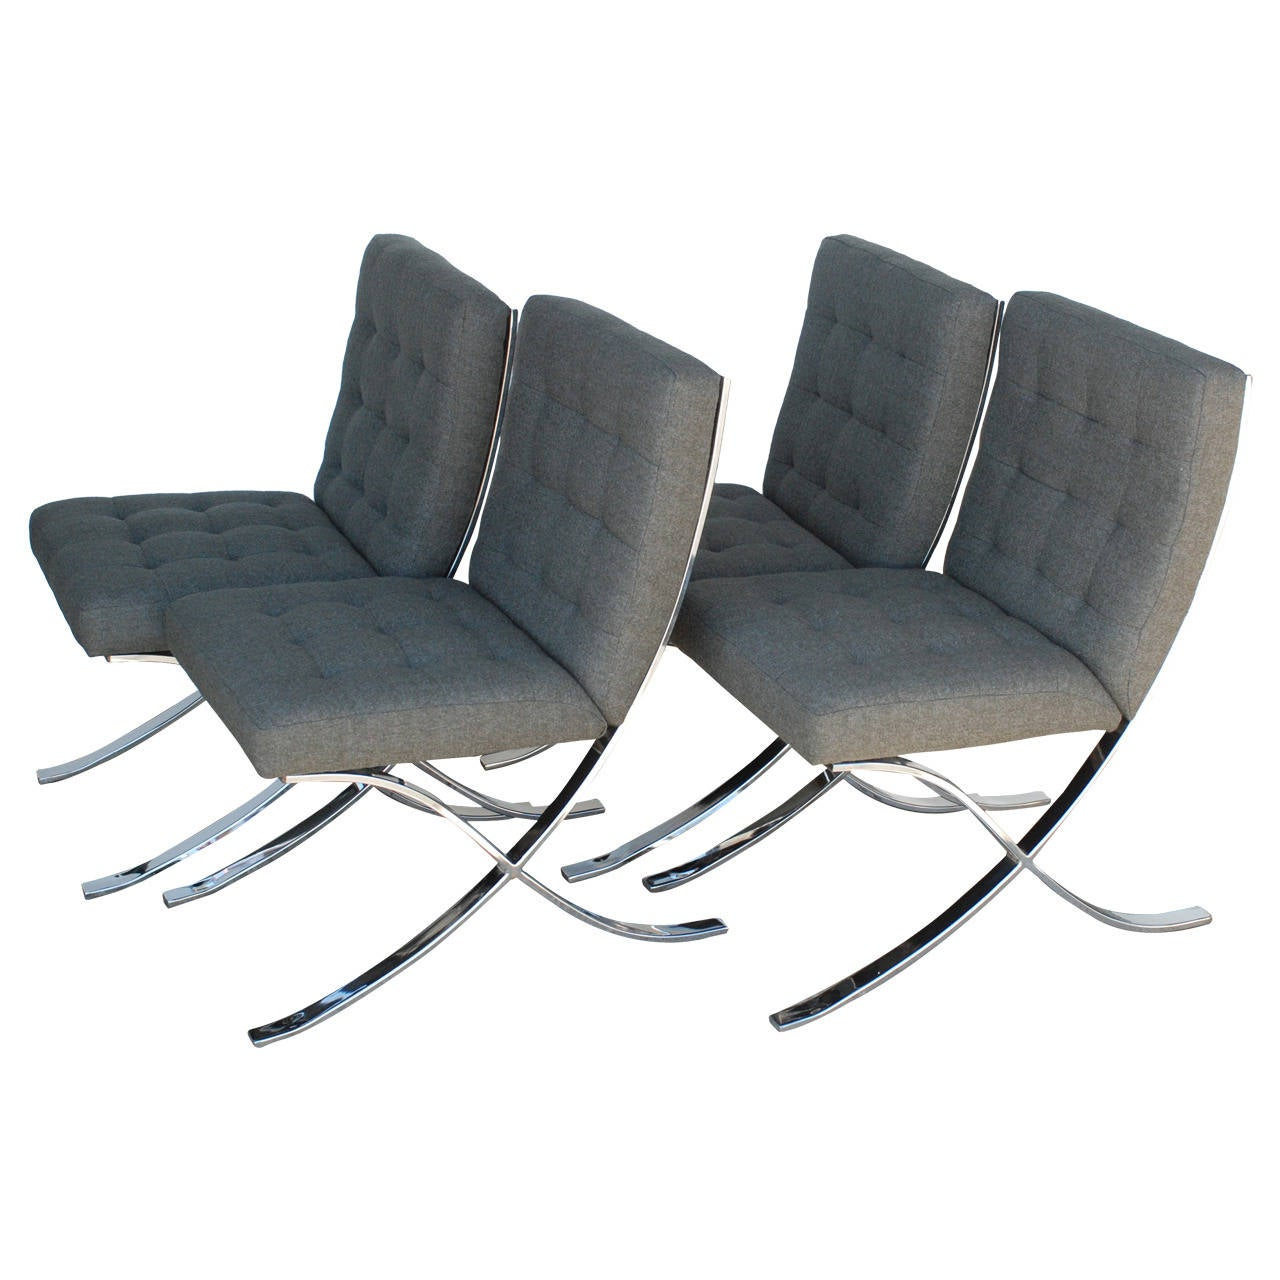 Set Of Four 1970s Chrome And Charcoal Grey Dining Chairs For Sale